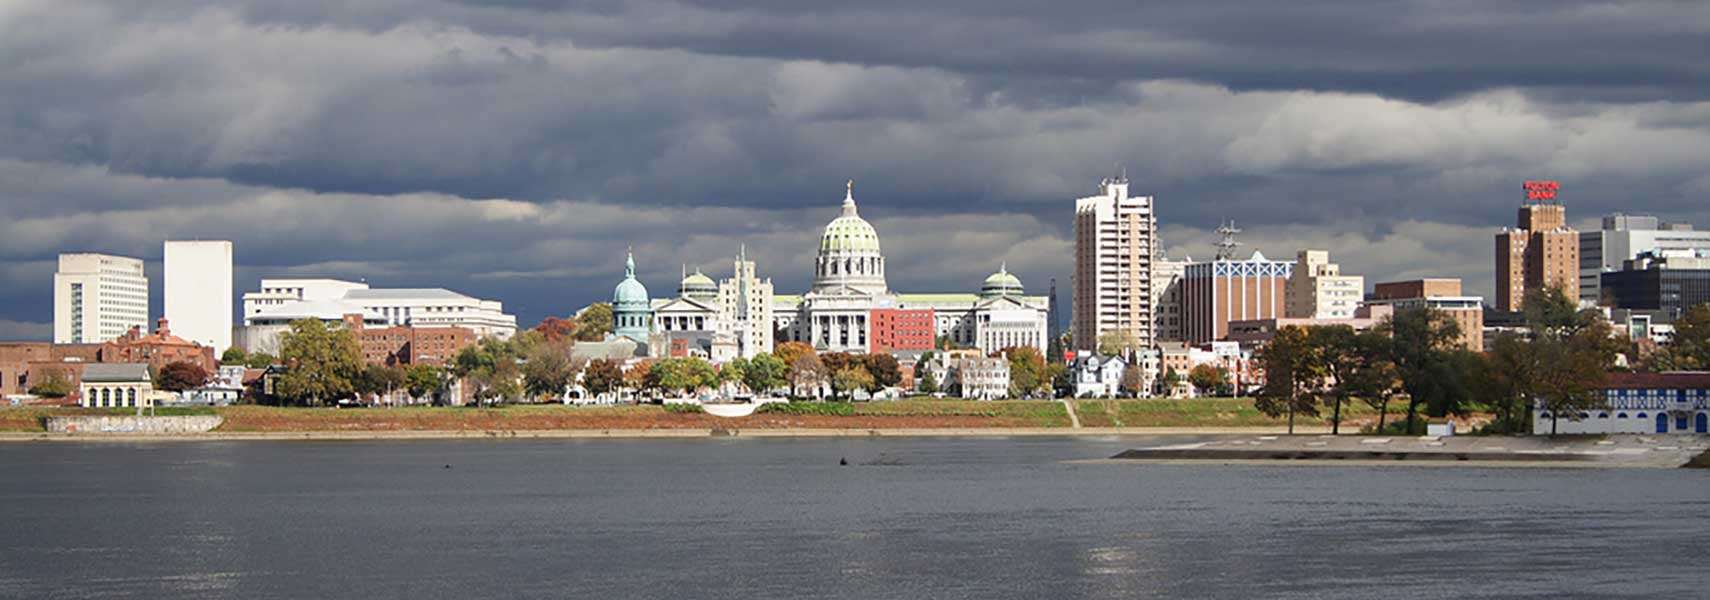 Google Map of Harrisburg capital of Pennsylvania USA Nations